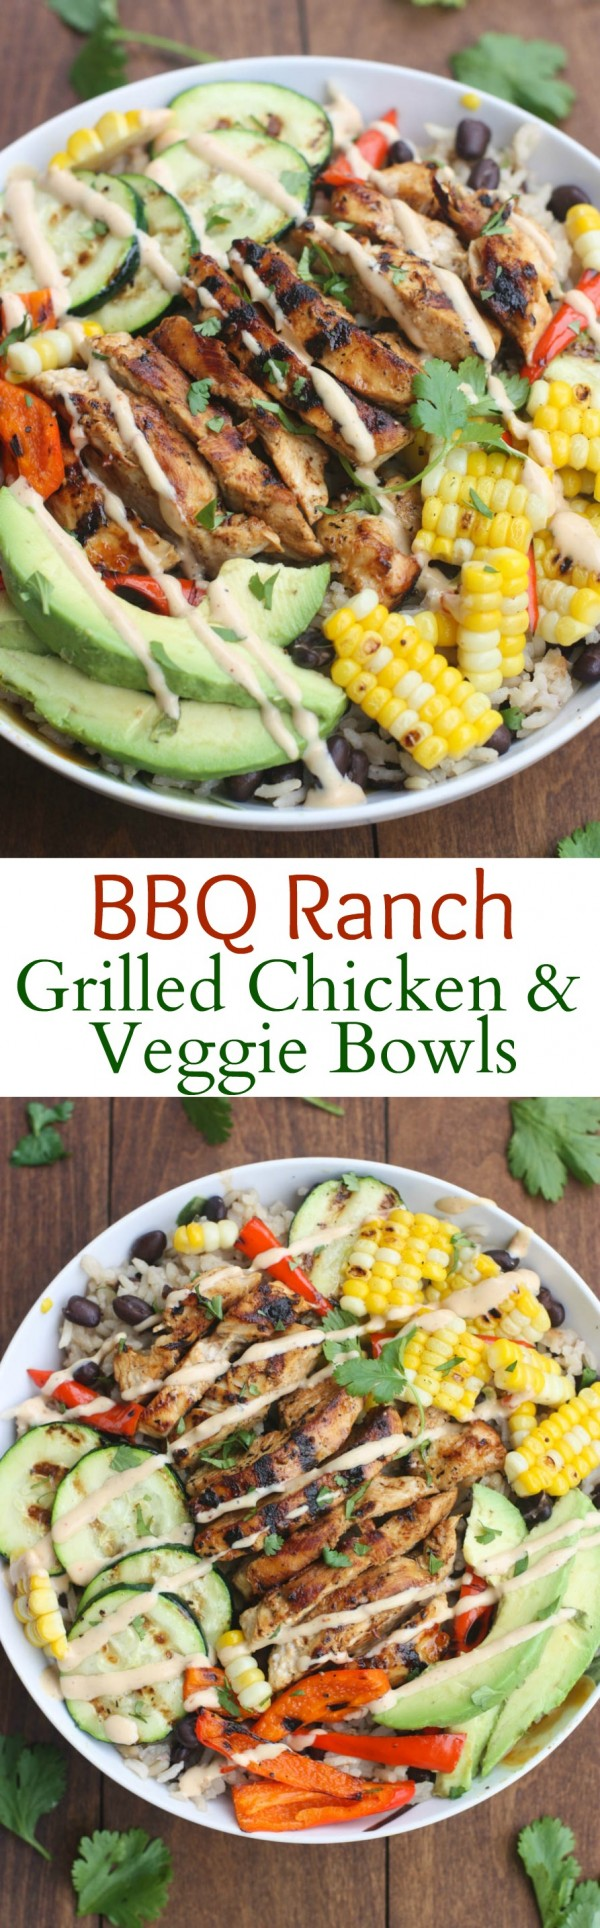 20 Unforgettable Chicken Recipes for a Romantic Dinner for Two - Get the recipe BBQ Ranch Grilled Chicken and Veggie Bowls @recipes_to_go